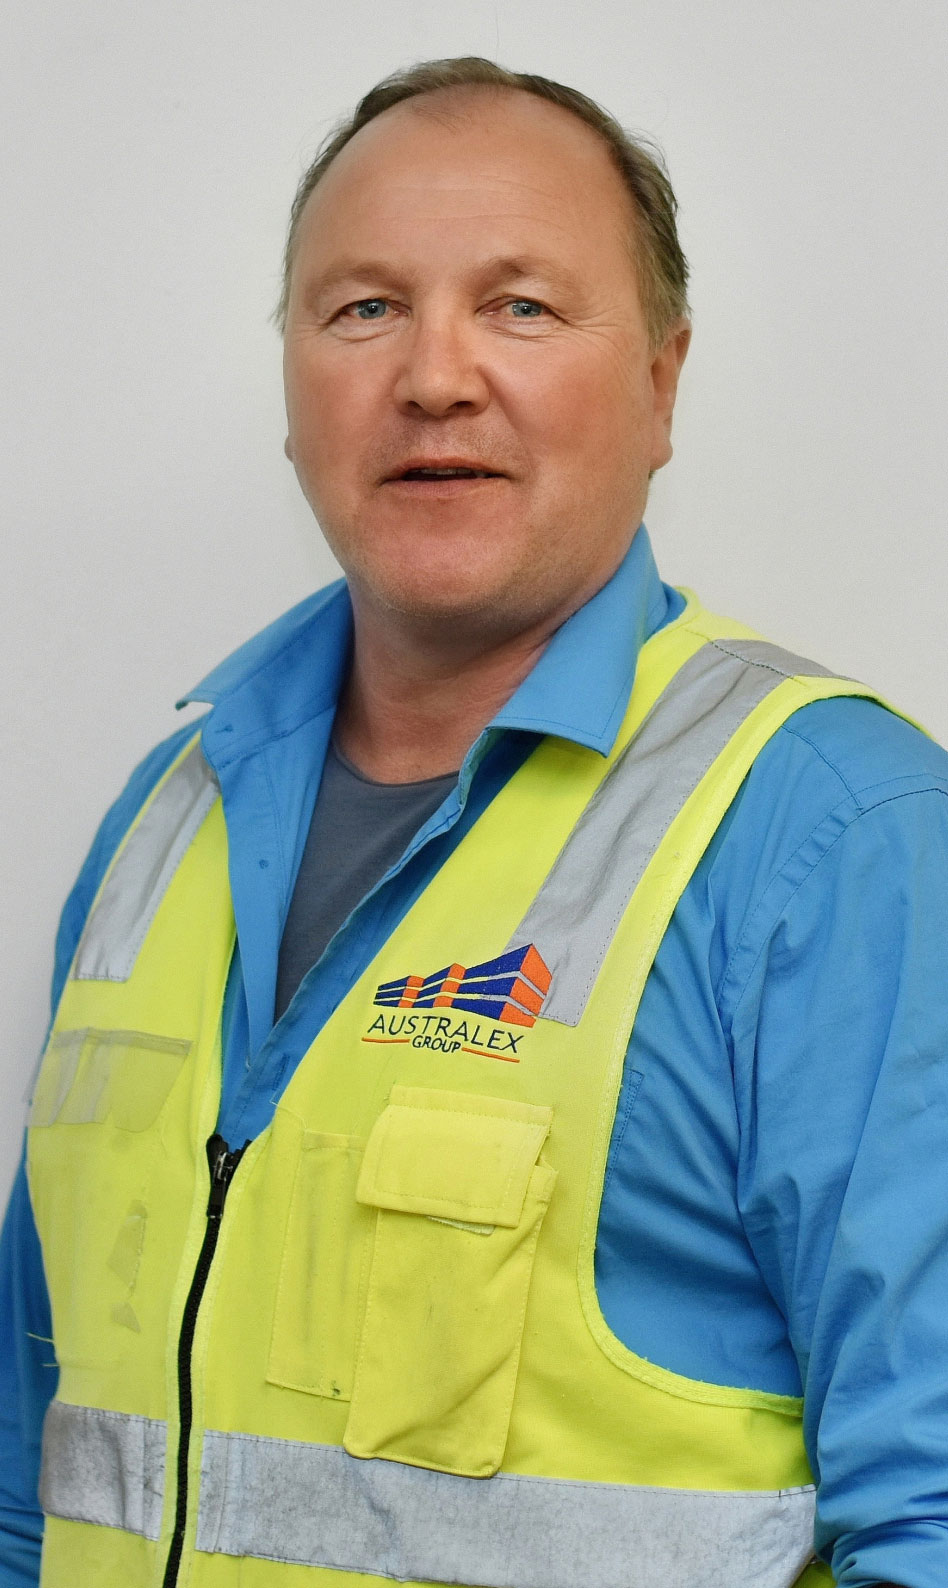 William Knight - Construction Manager